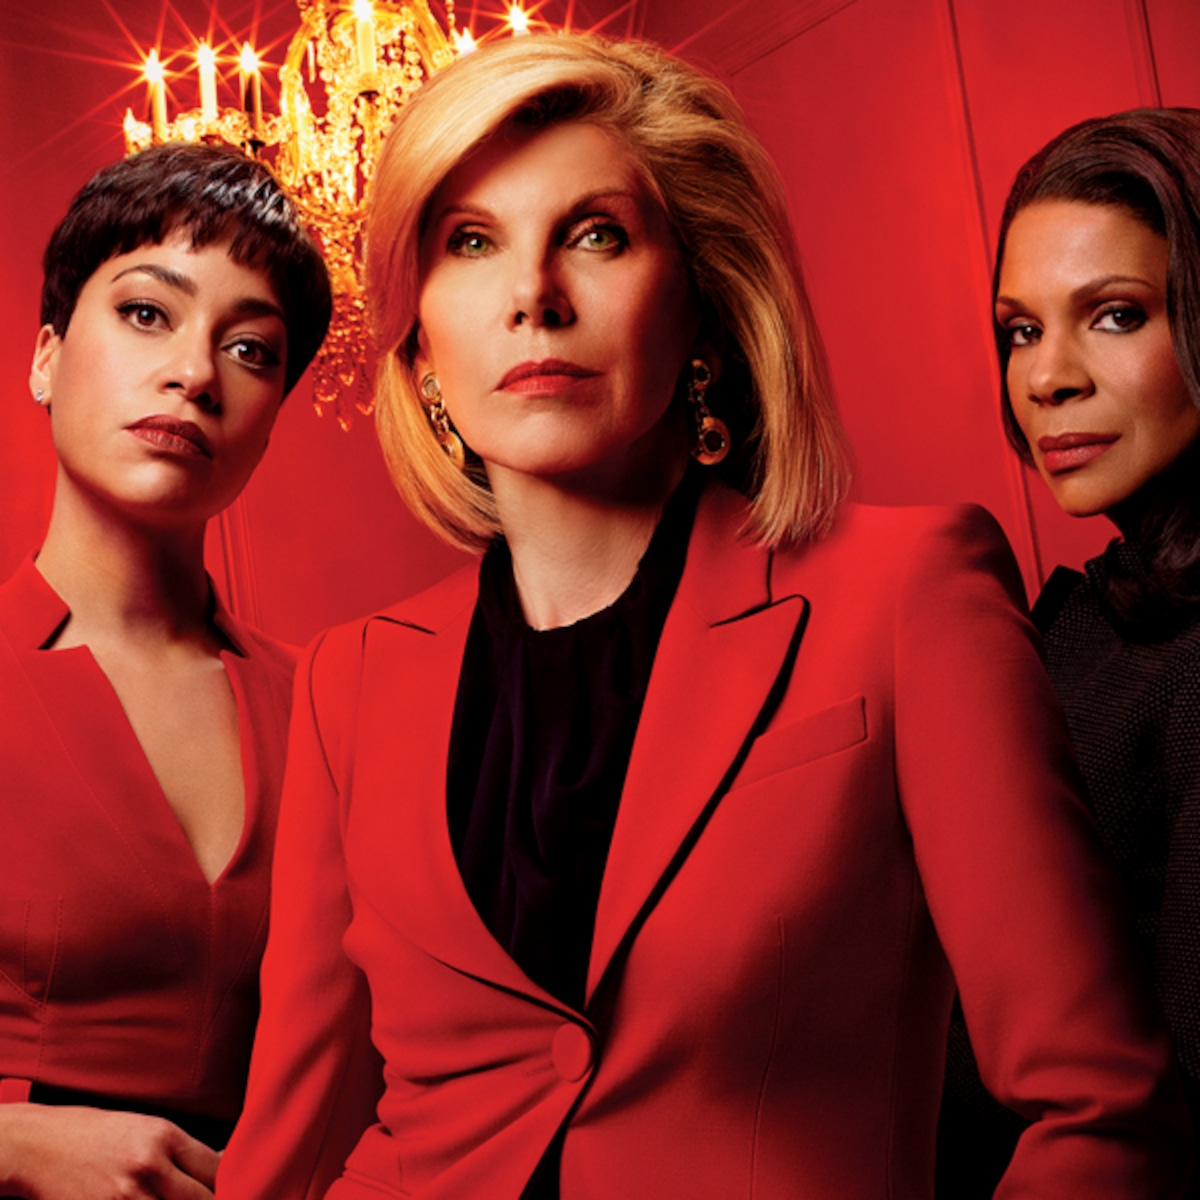 The Good Fight Exit Surprise Cush Jumbo Leaving The Show E Online Erica tazel, jane lynch, brian stokes mitchell, jerry adler and paul guilfoyle guest star. cush jumbo leaving